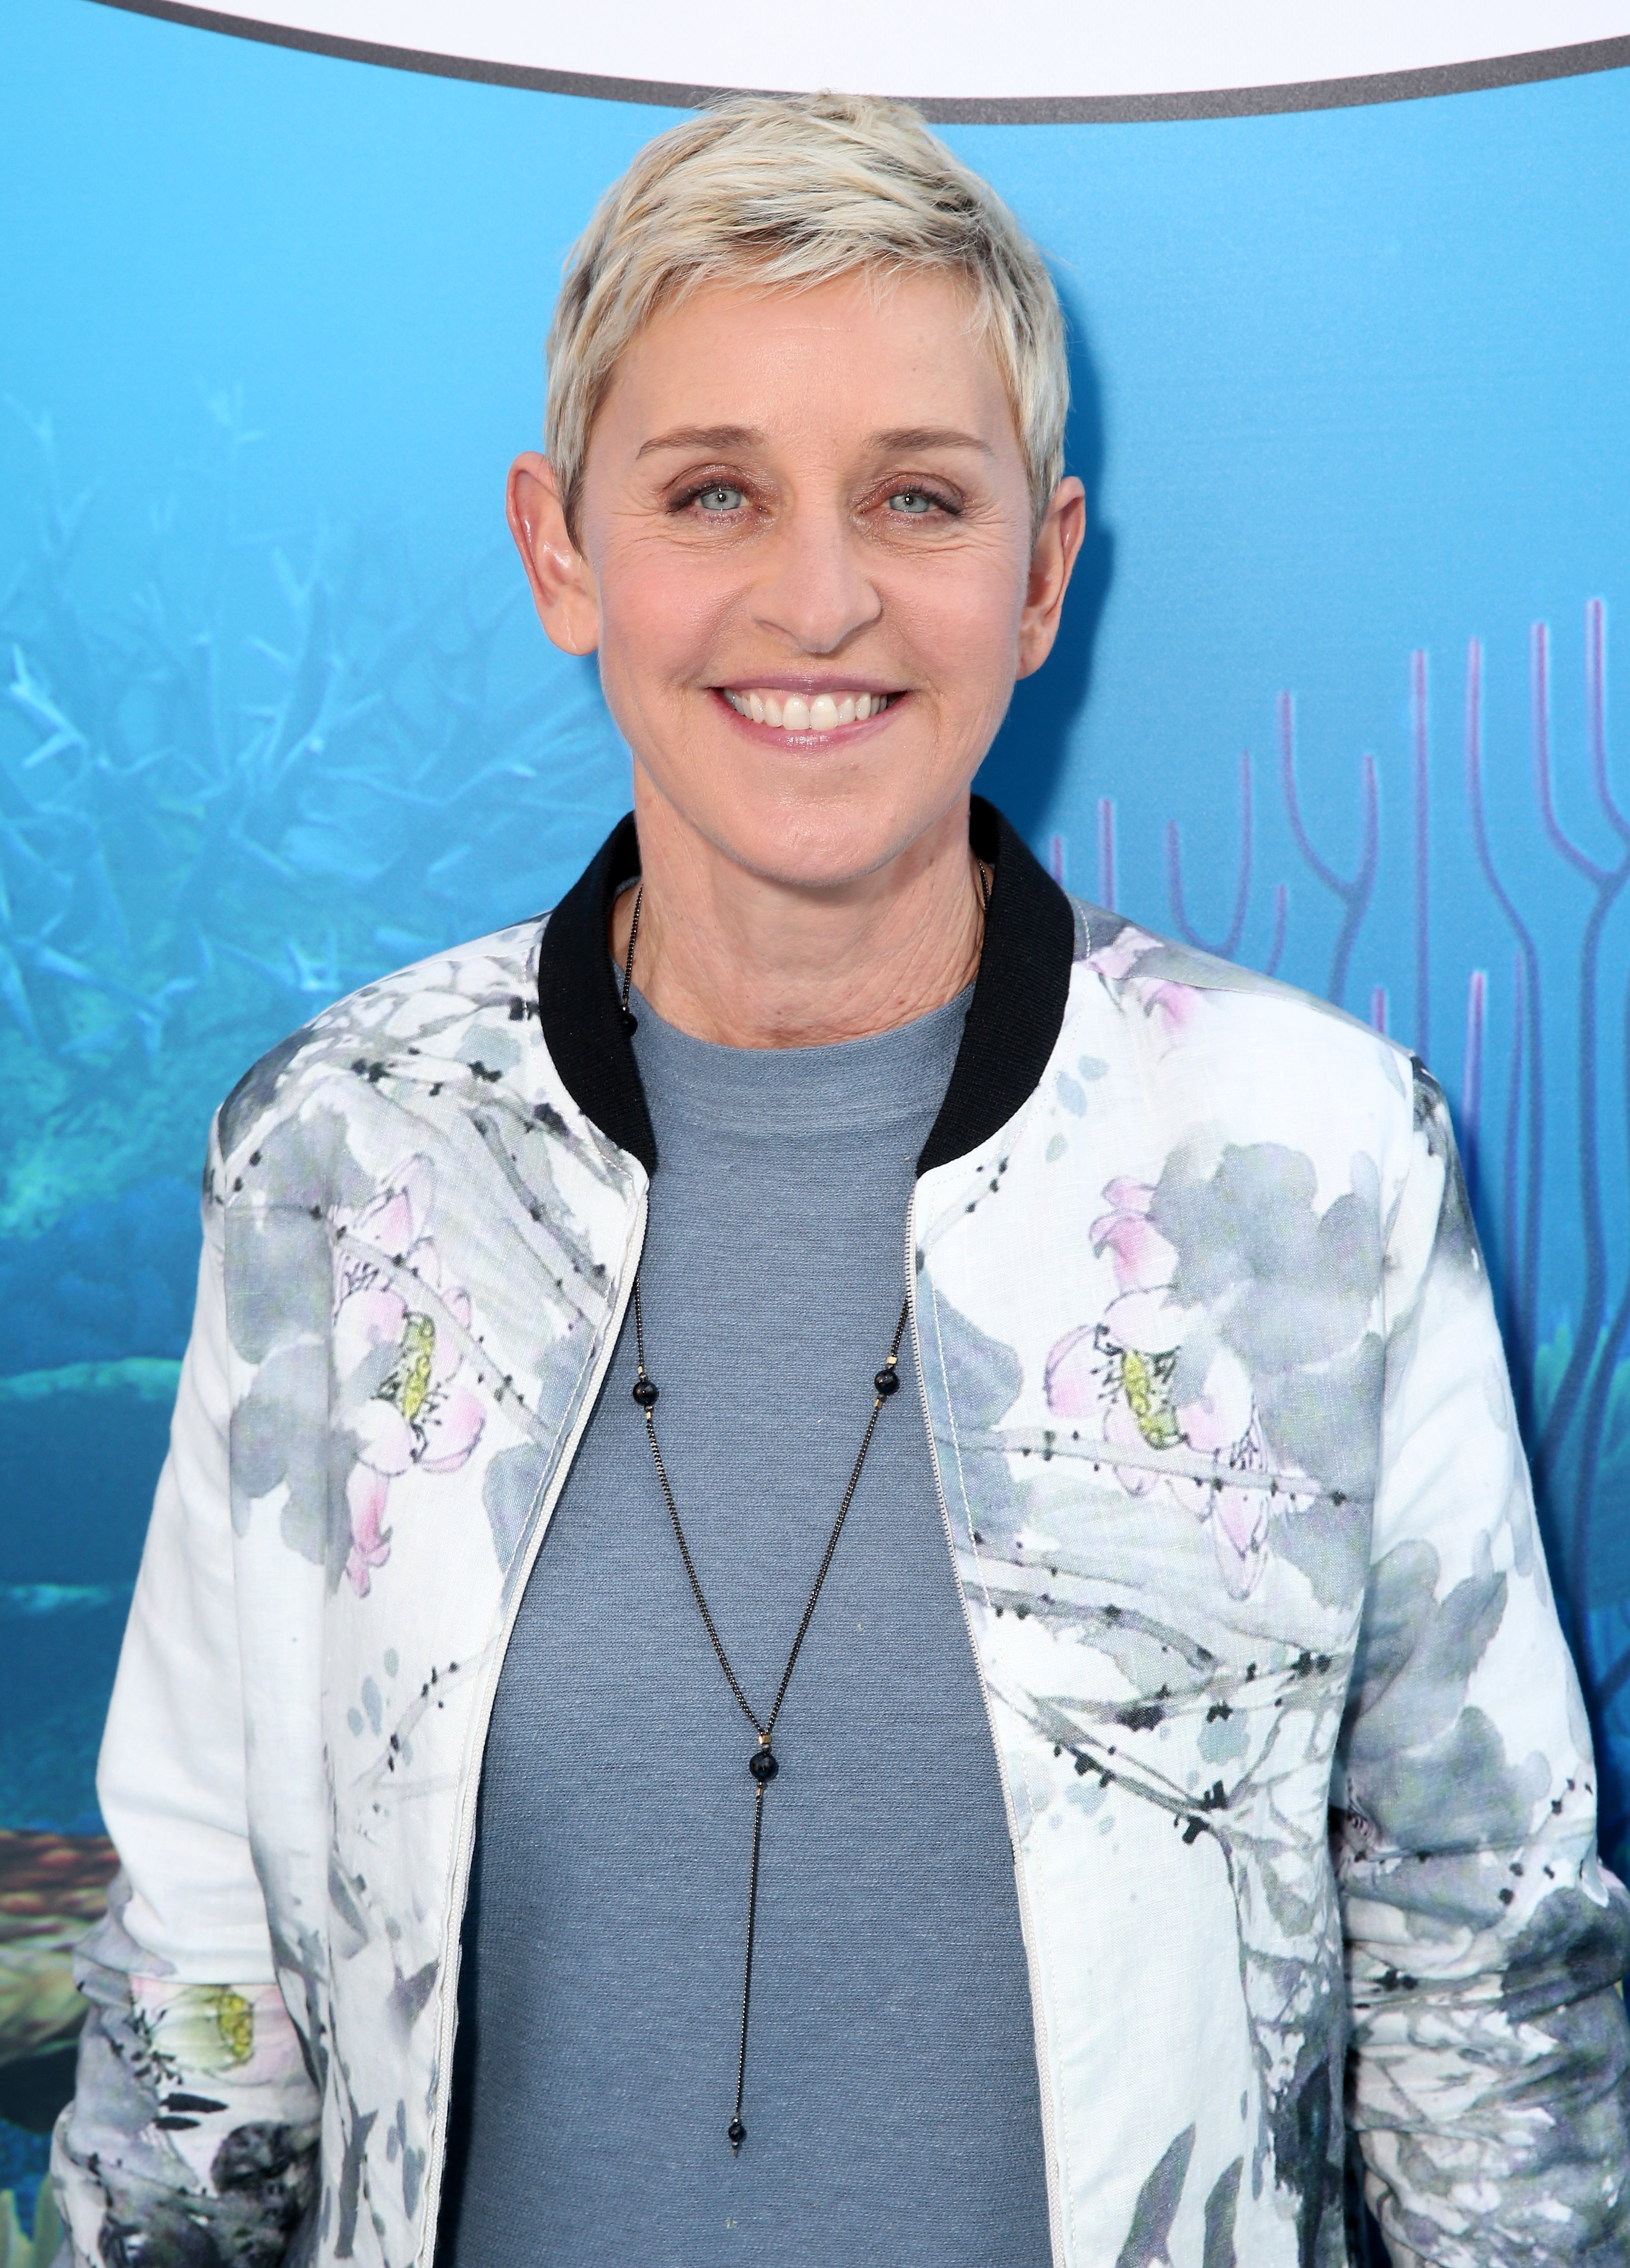 Ellen DeGeneres attends the world premiere of Disney-Pixar's 'Finding Dory' at the El Capitan Theatre on June 8, 2016, in Hollywood, California. | Source: Getty Images.